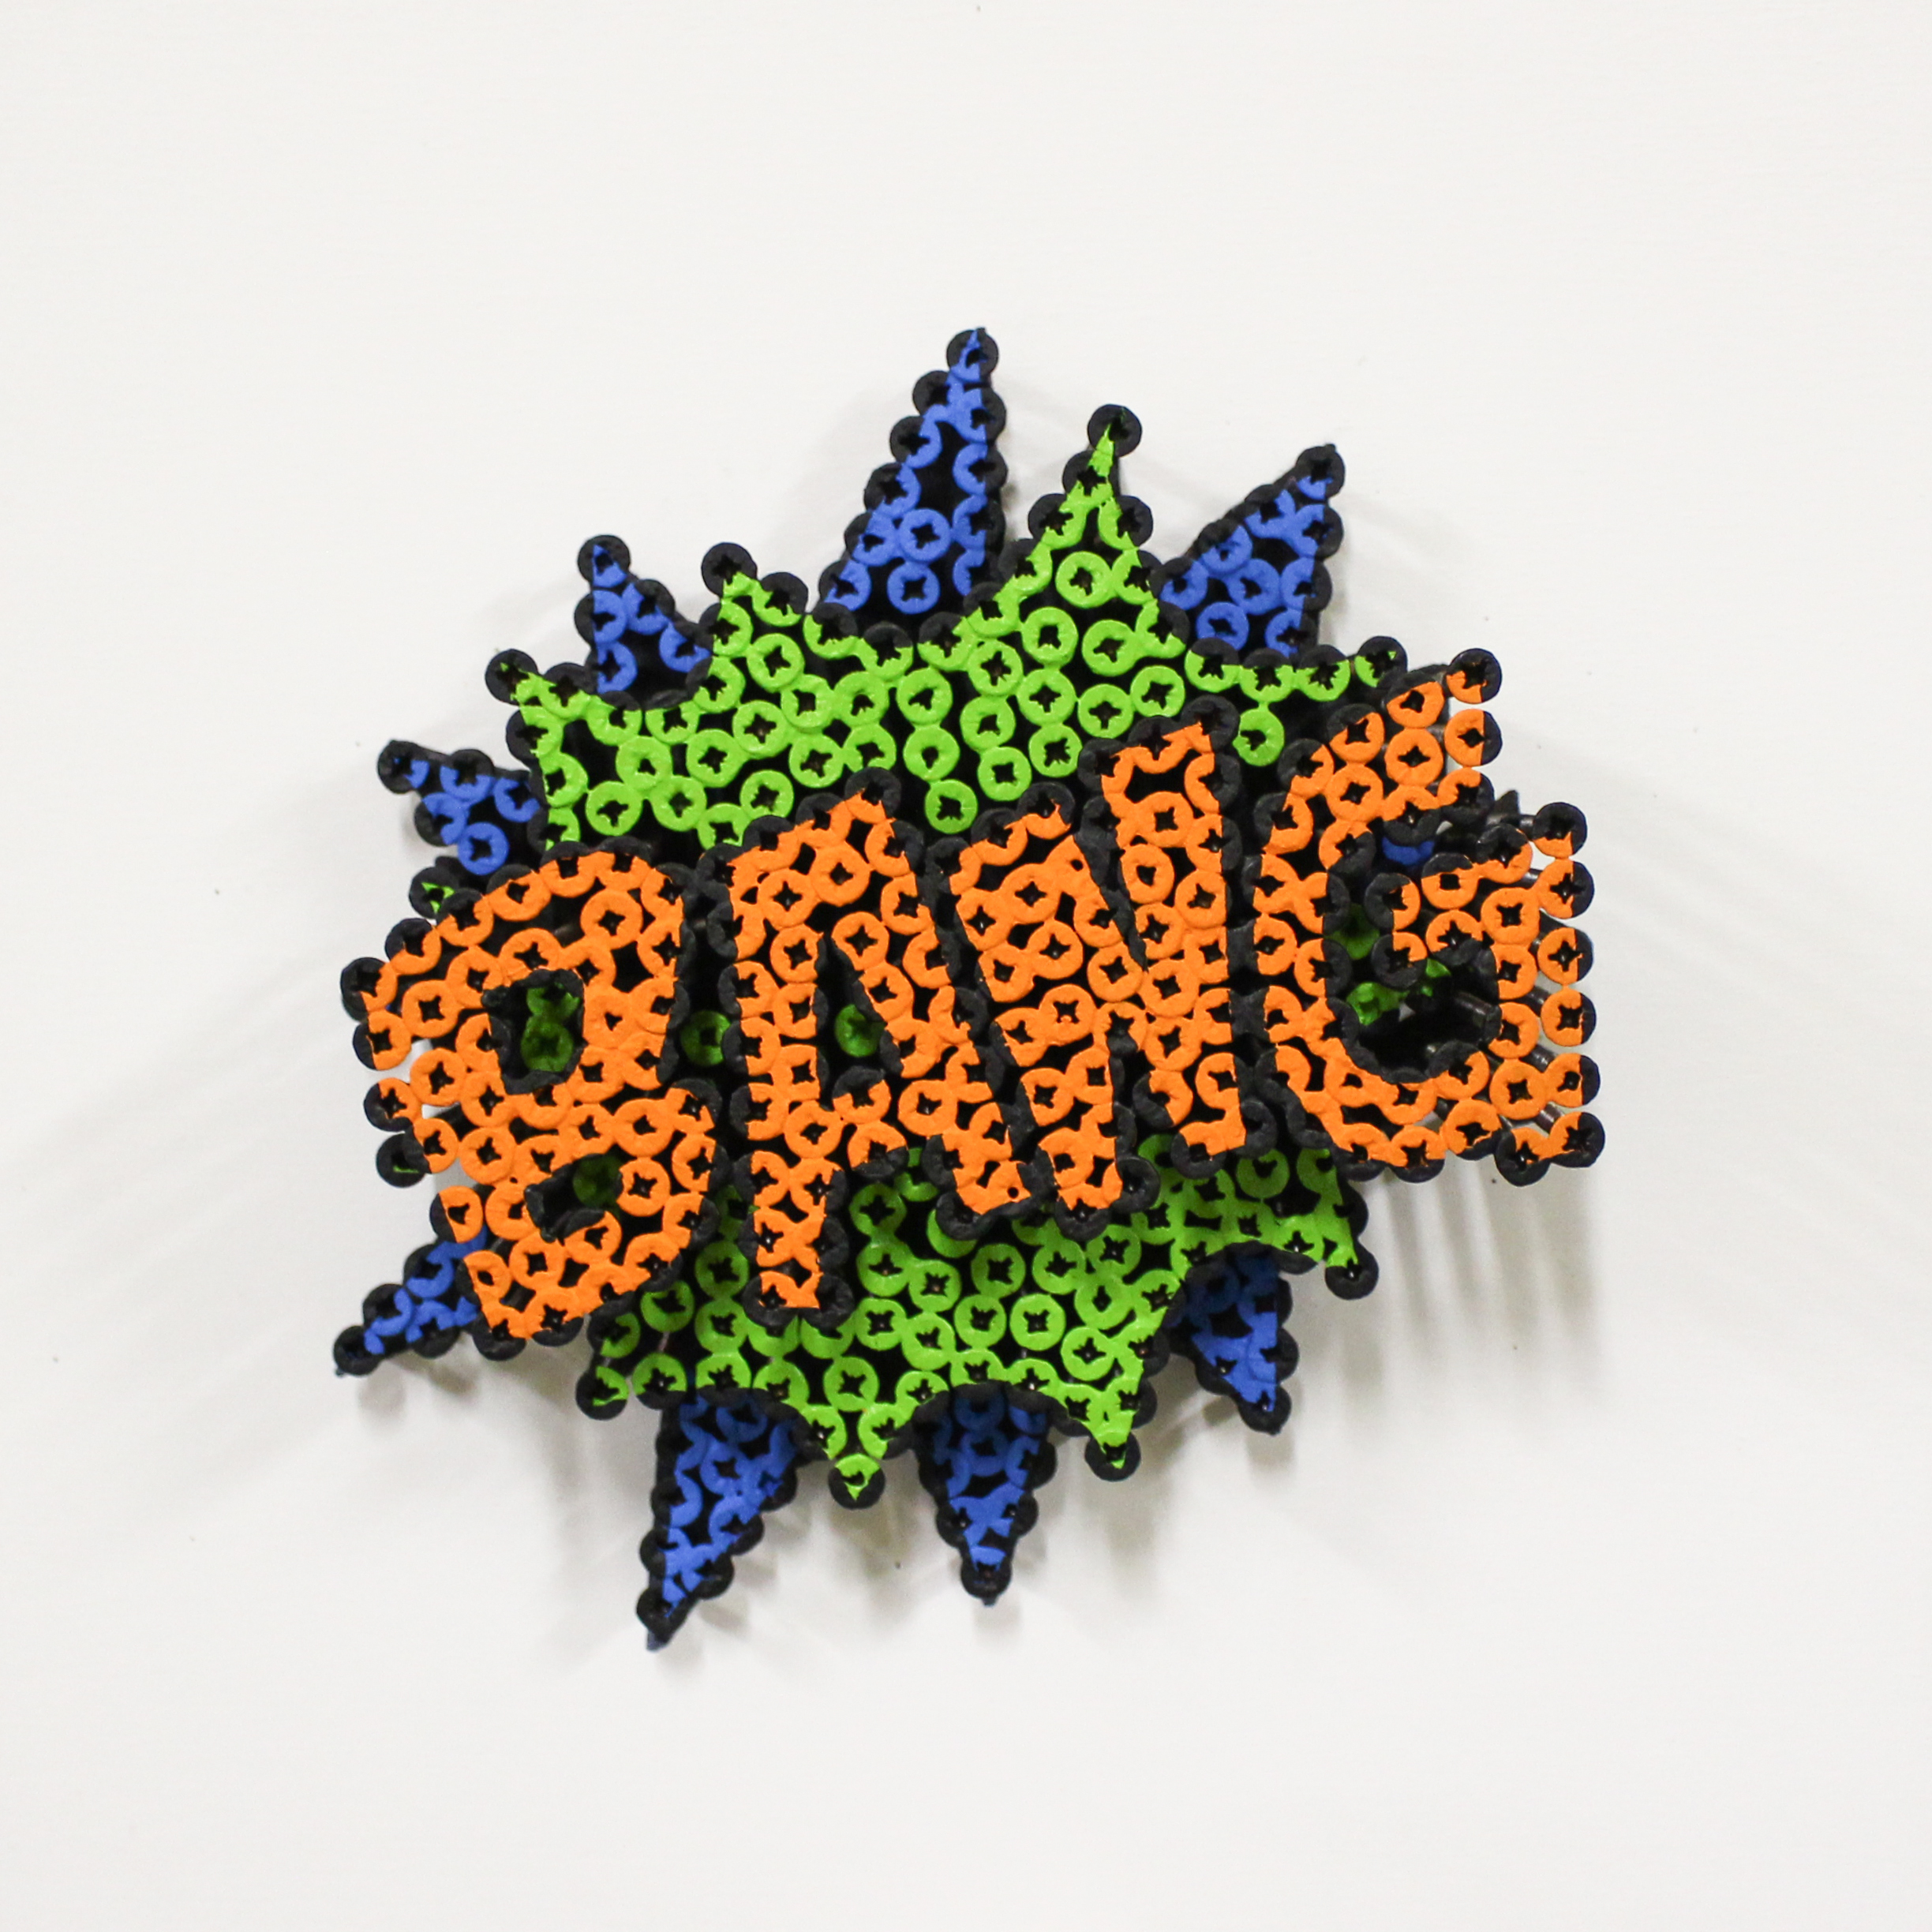 Alessandro Padovan - Screw art - Mini Bang Groen